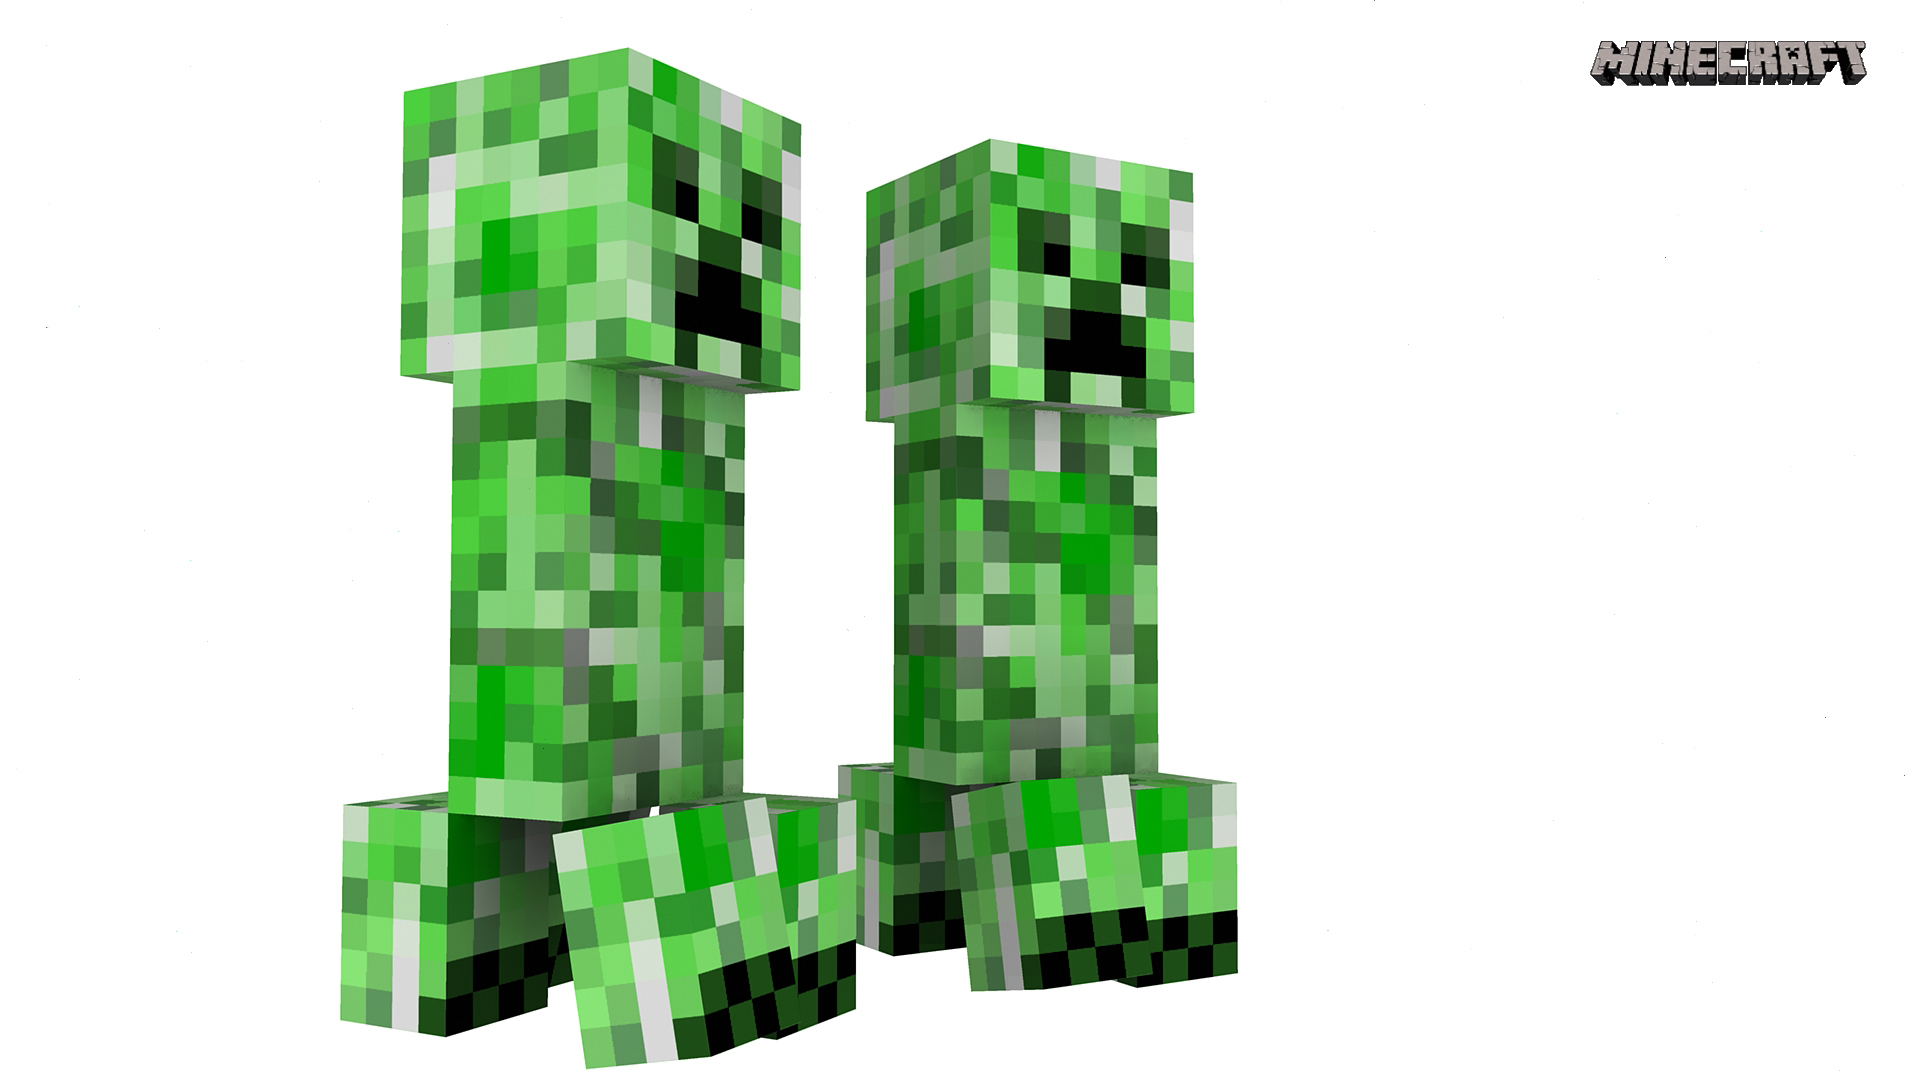 Halloween Fall Iphone Wallpaper Hd Minecraft Creeper Iphone Images Pixelstalk Net